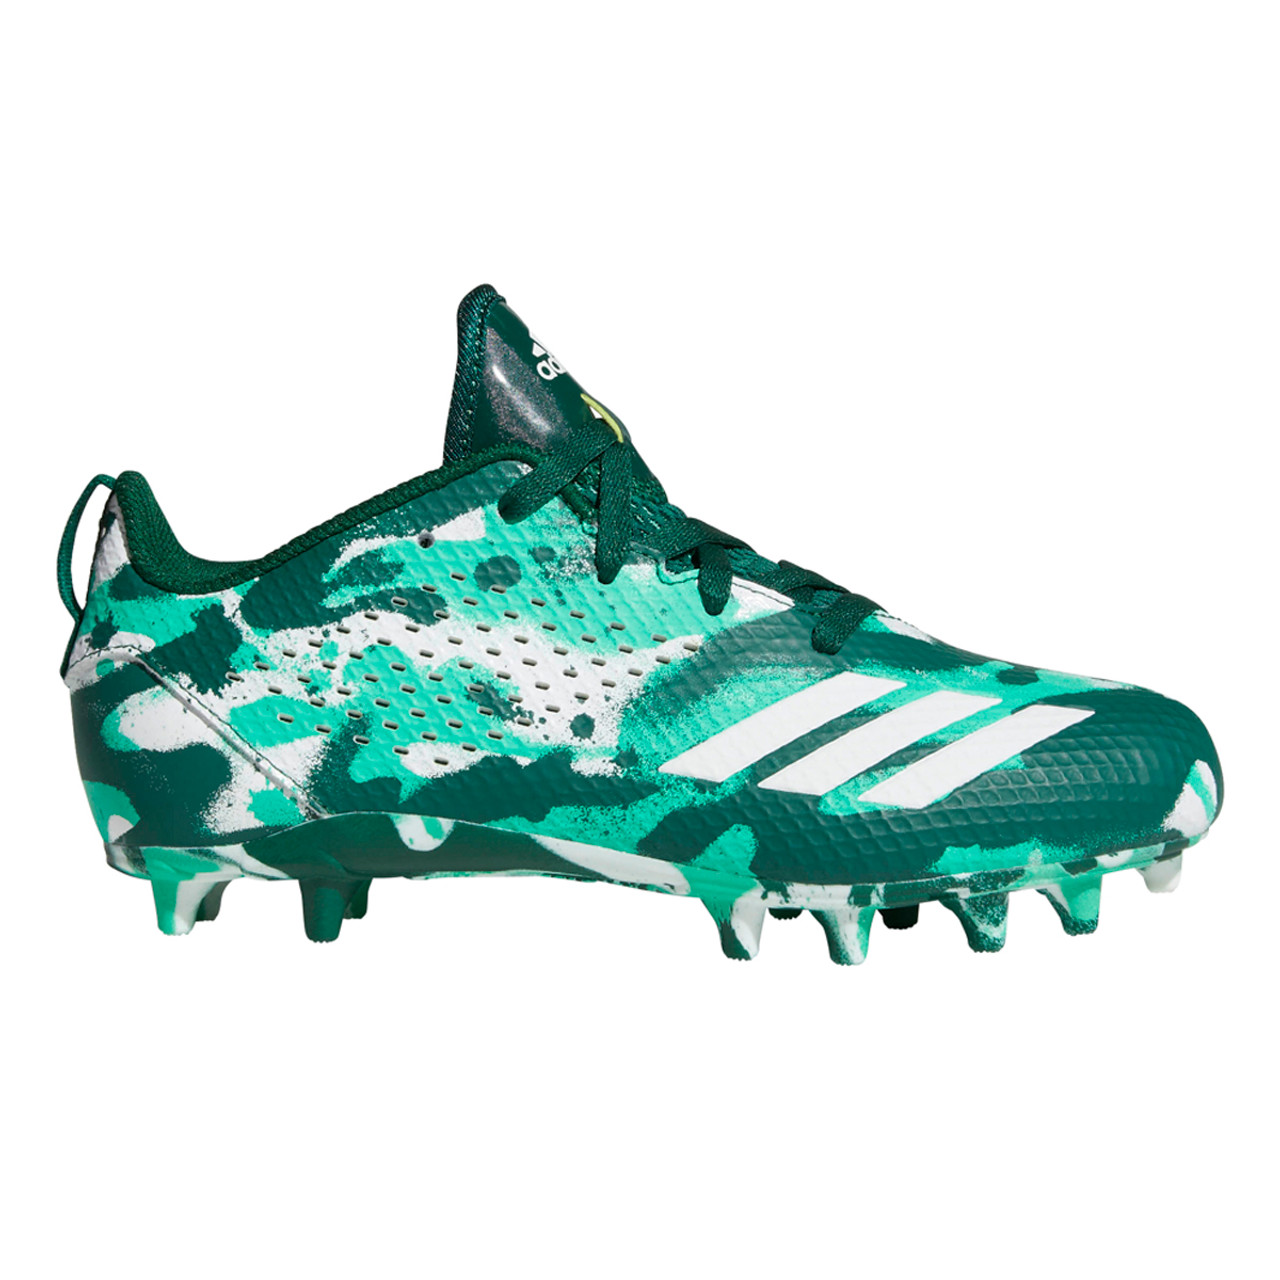 san francisco 4dcda 57750 Adidas Adizero 5-Star 7.0 Junior Football Cleats B37171